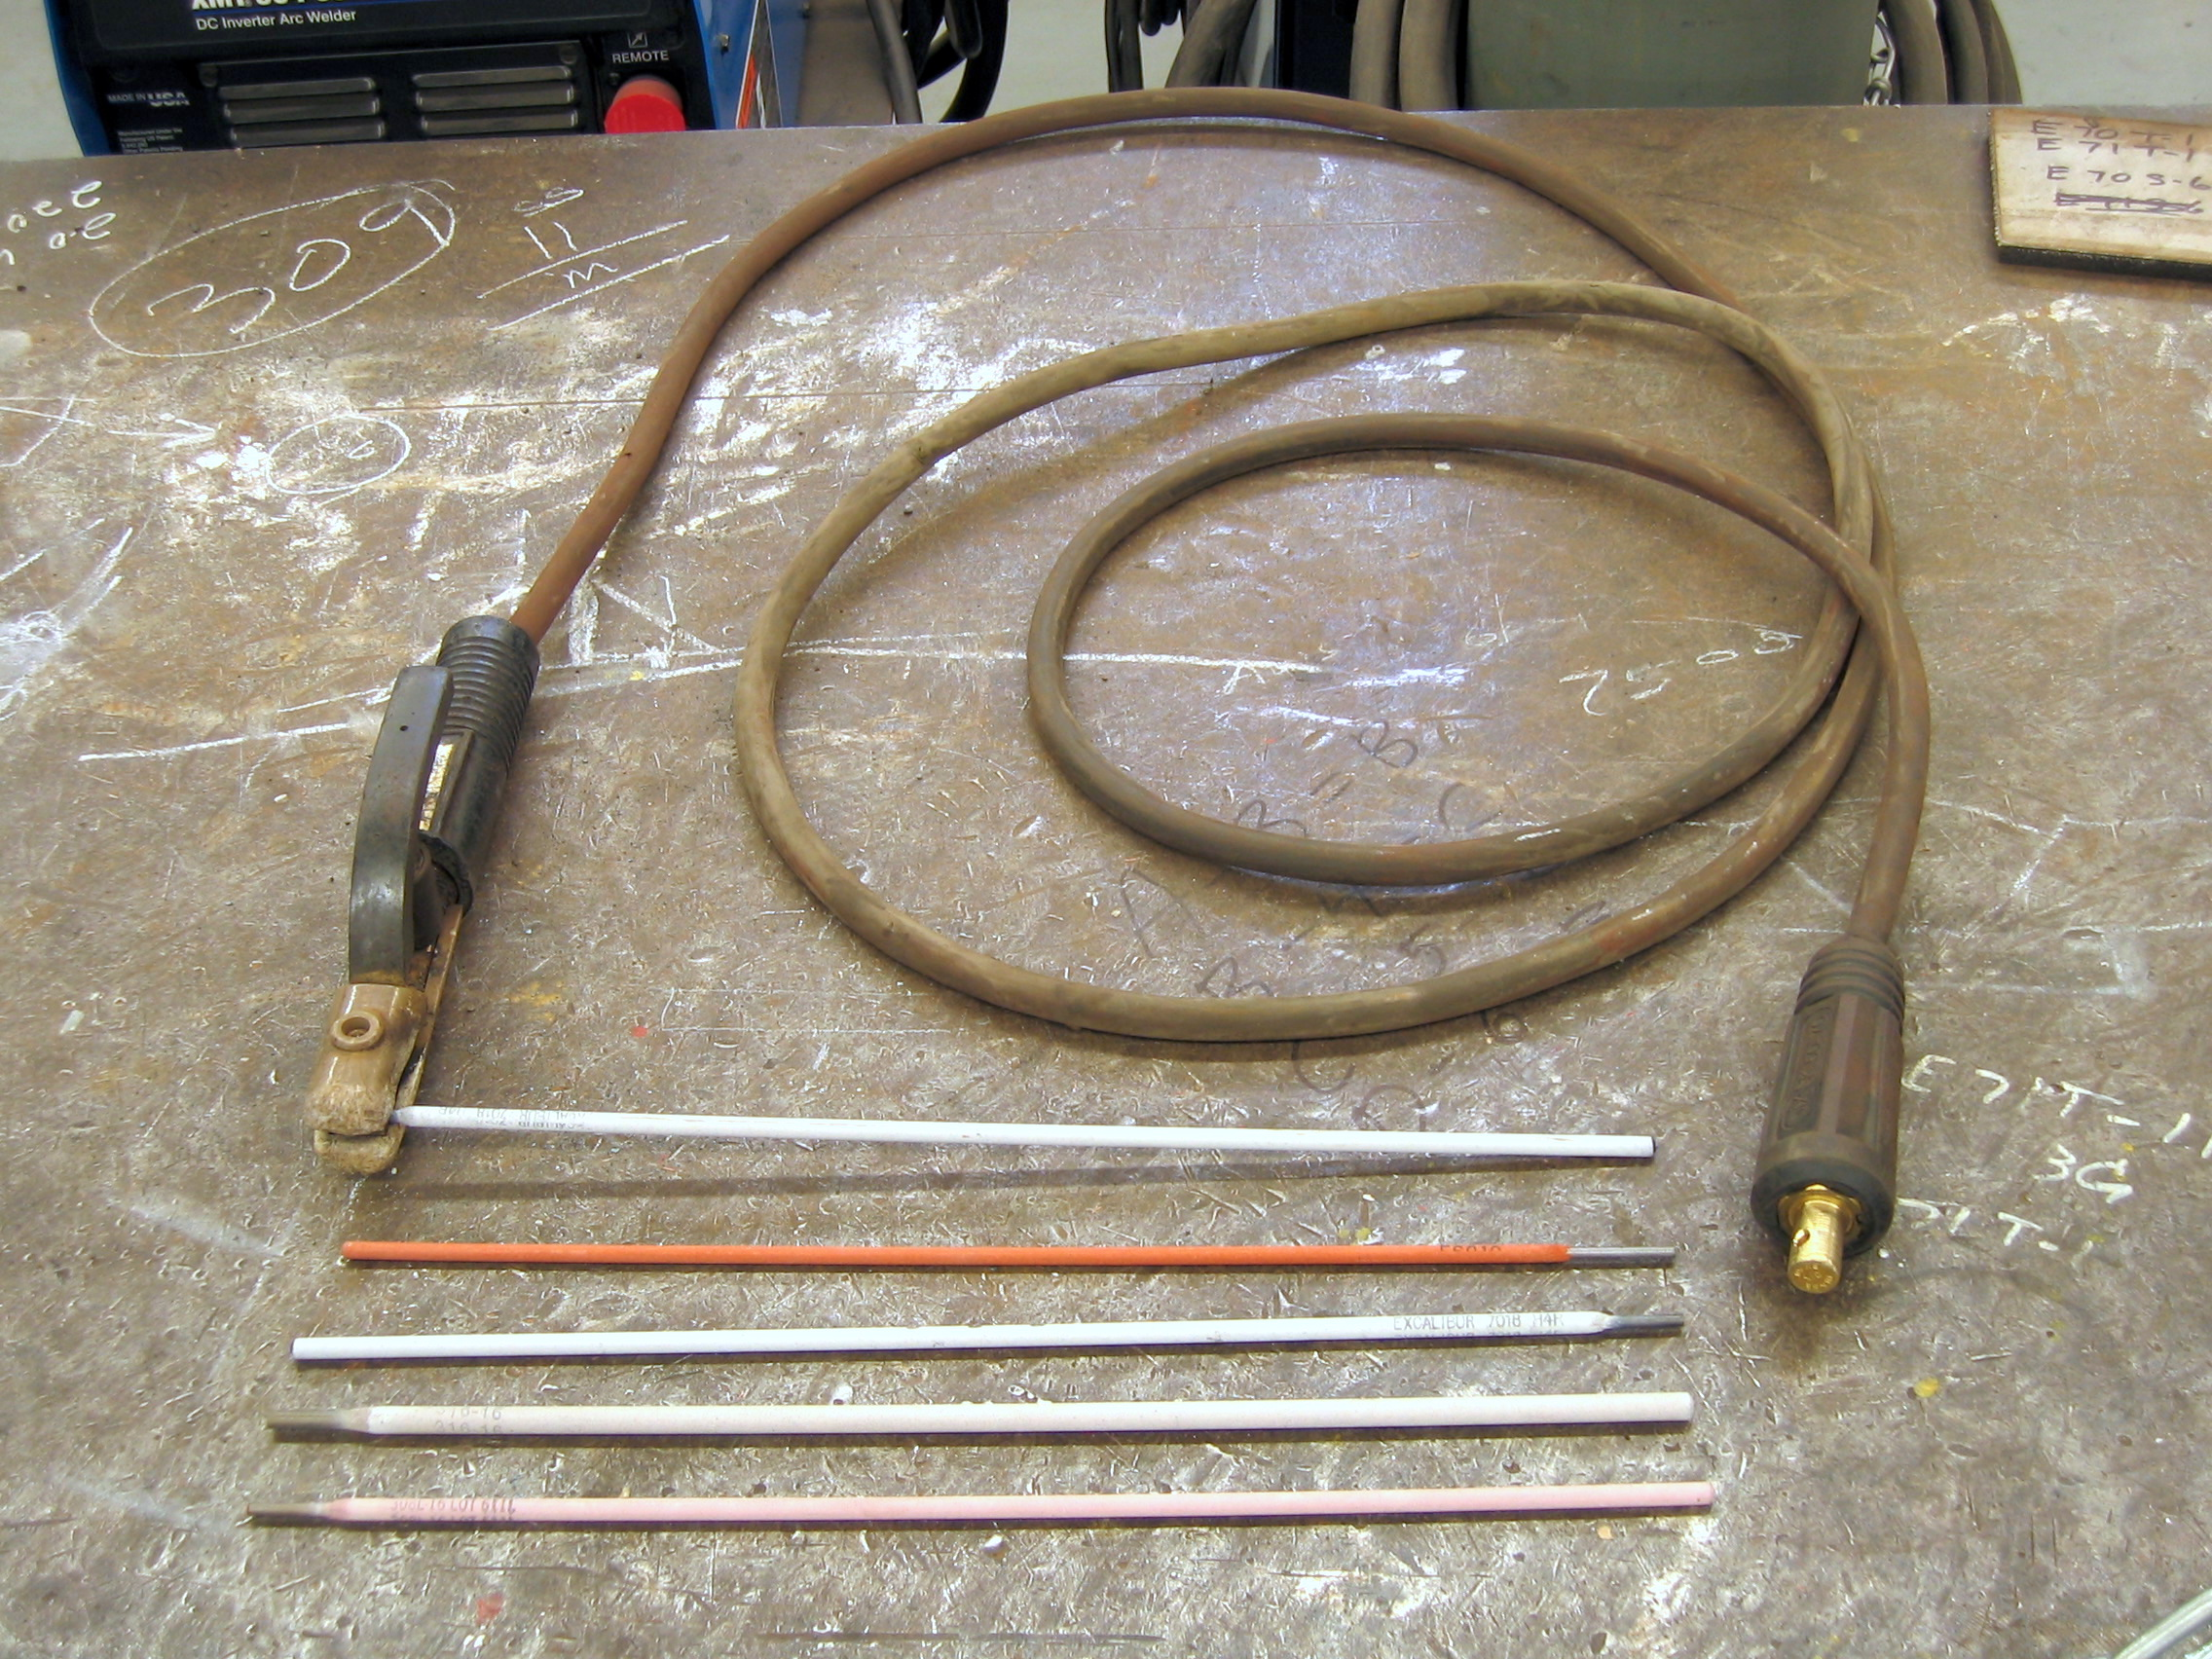 Various Shielded Metal Arc Welding electrodes and an electrode holder which uses Welding Rod Chart as a guide